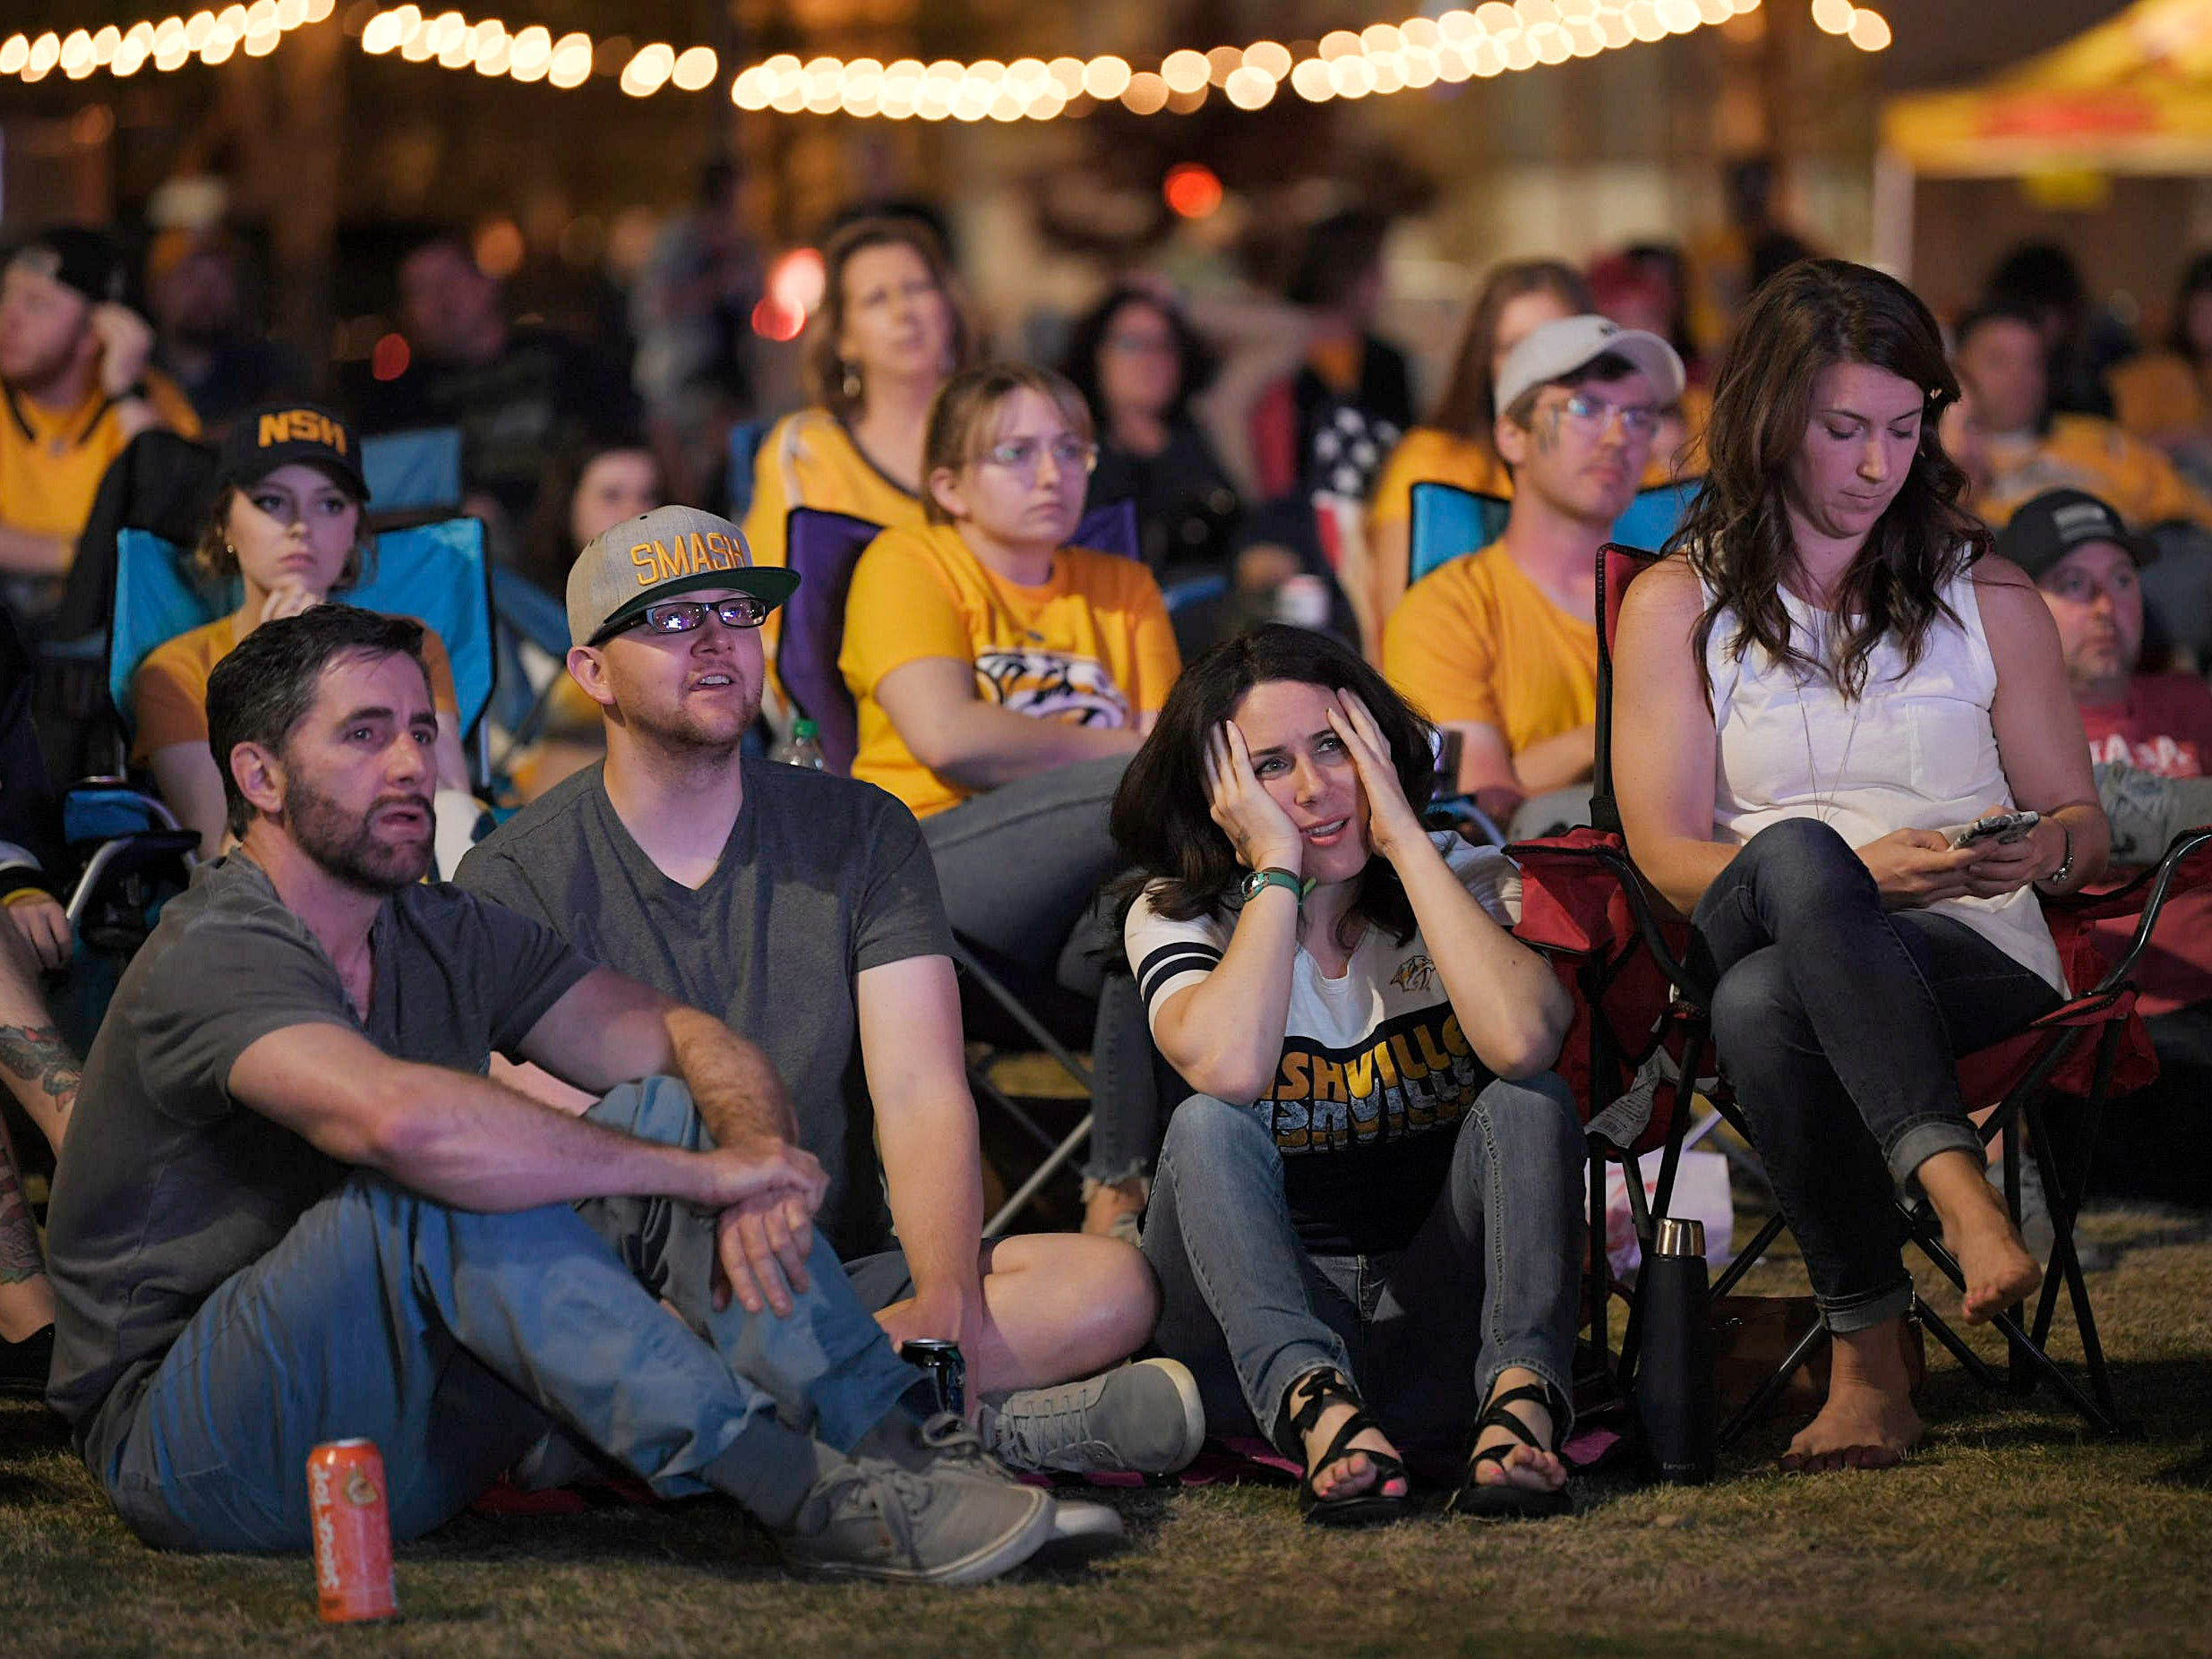 About 200 fans gather to watch the game at Preds Party in the Park at Walk of Fame Park in Nashville on Wednesday, April 10, 2019.